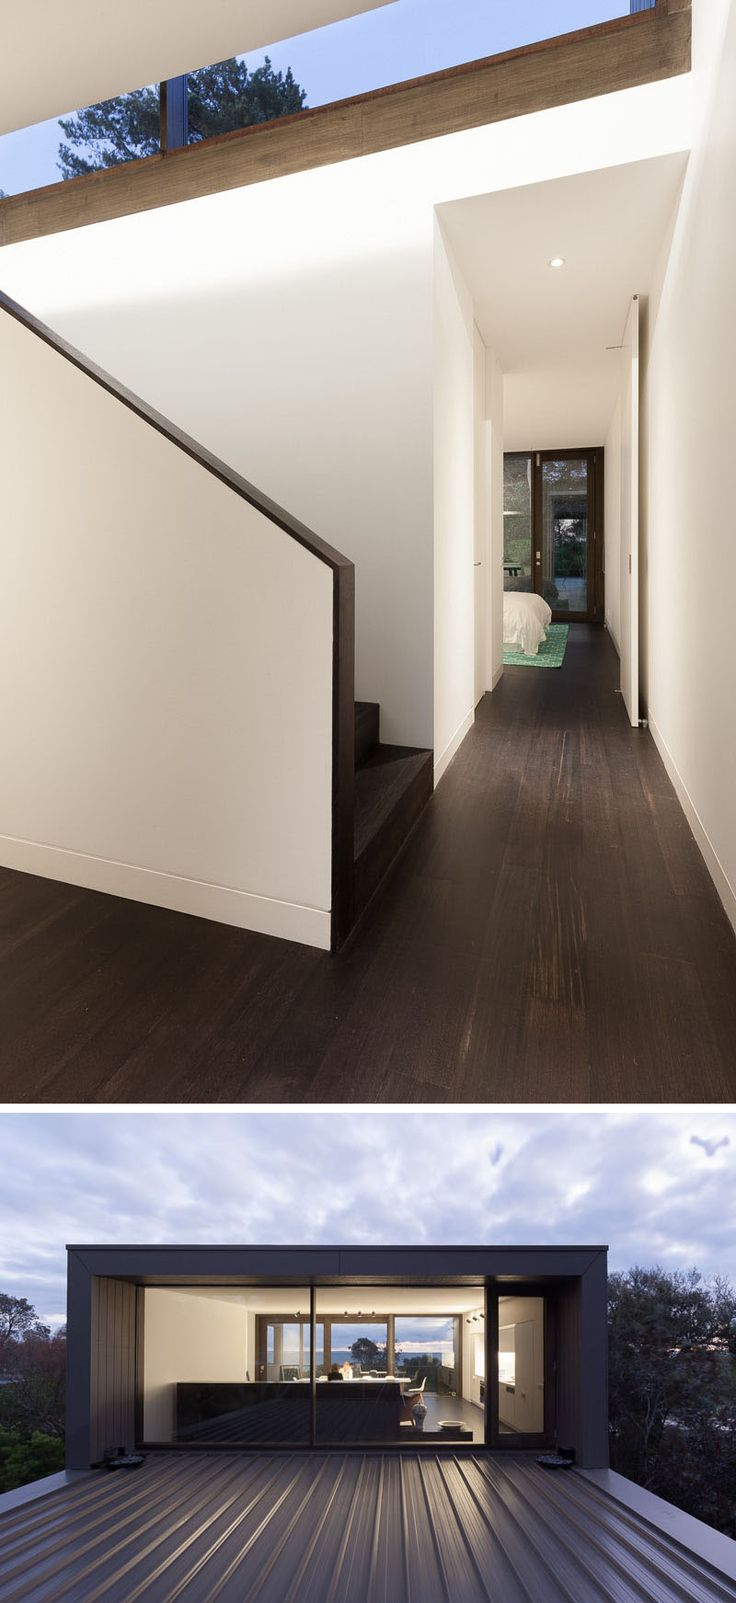 Dark hardwood flooring is featured throughout this modern house contrasts the white walls. Heading upstairs, the common areas of the home are revealed. At the top of the stairs, there's the option of going into the living area, or accessing the roof through a glass door.